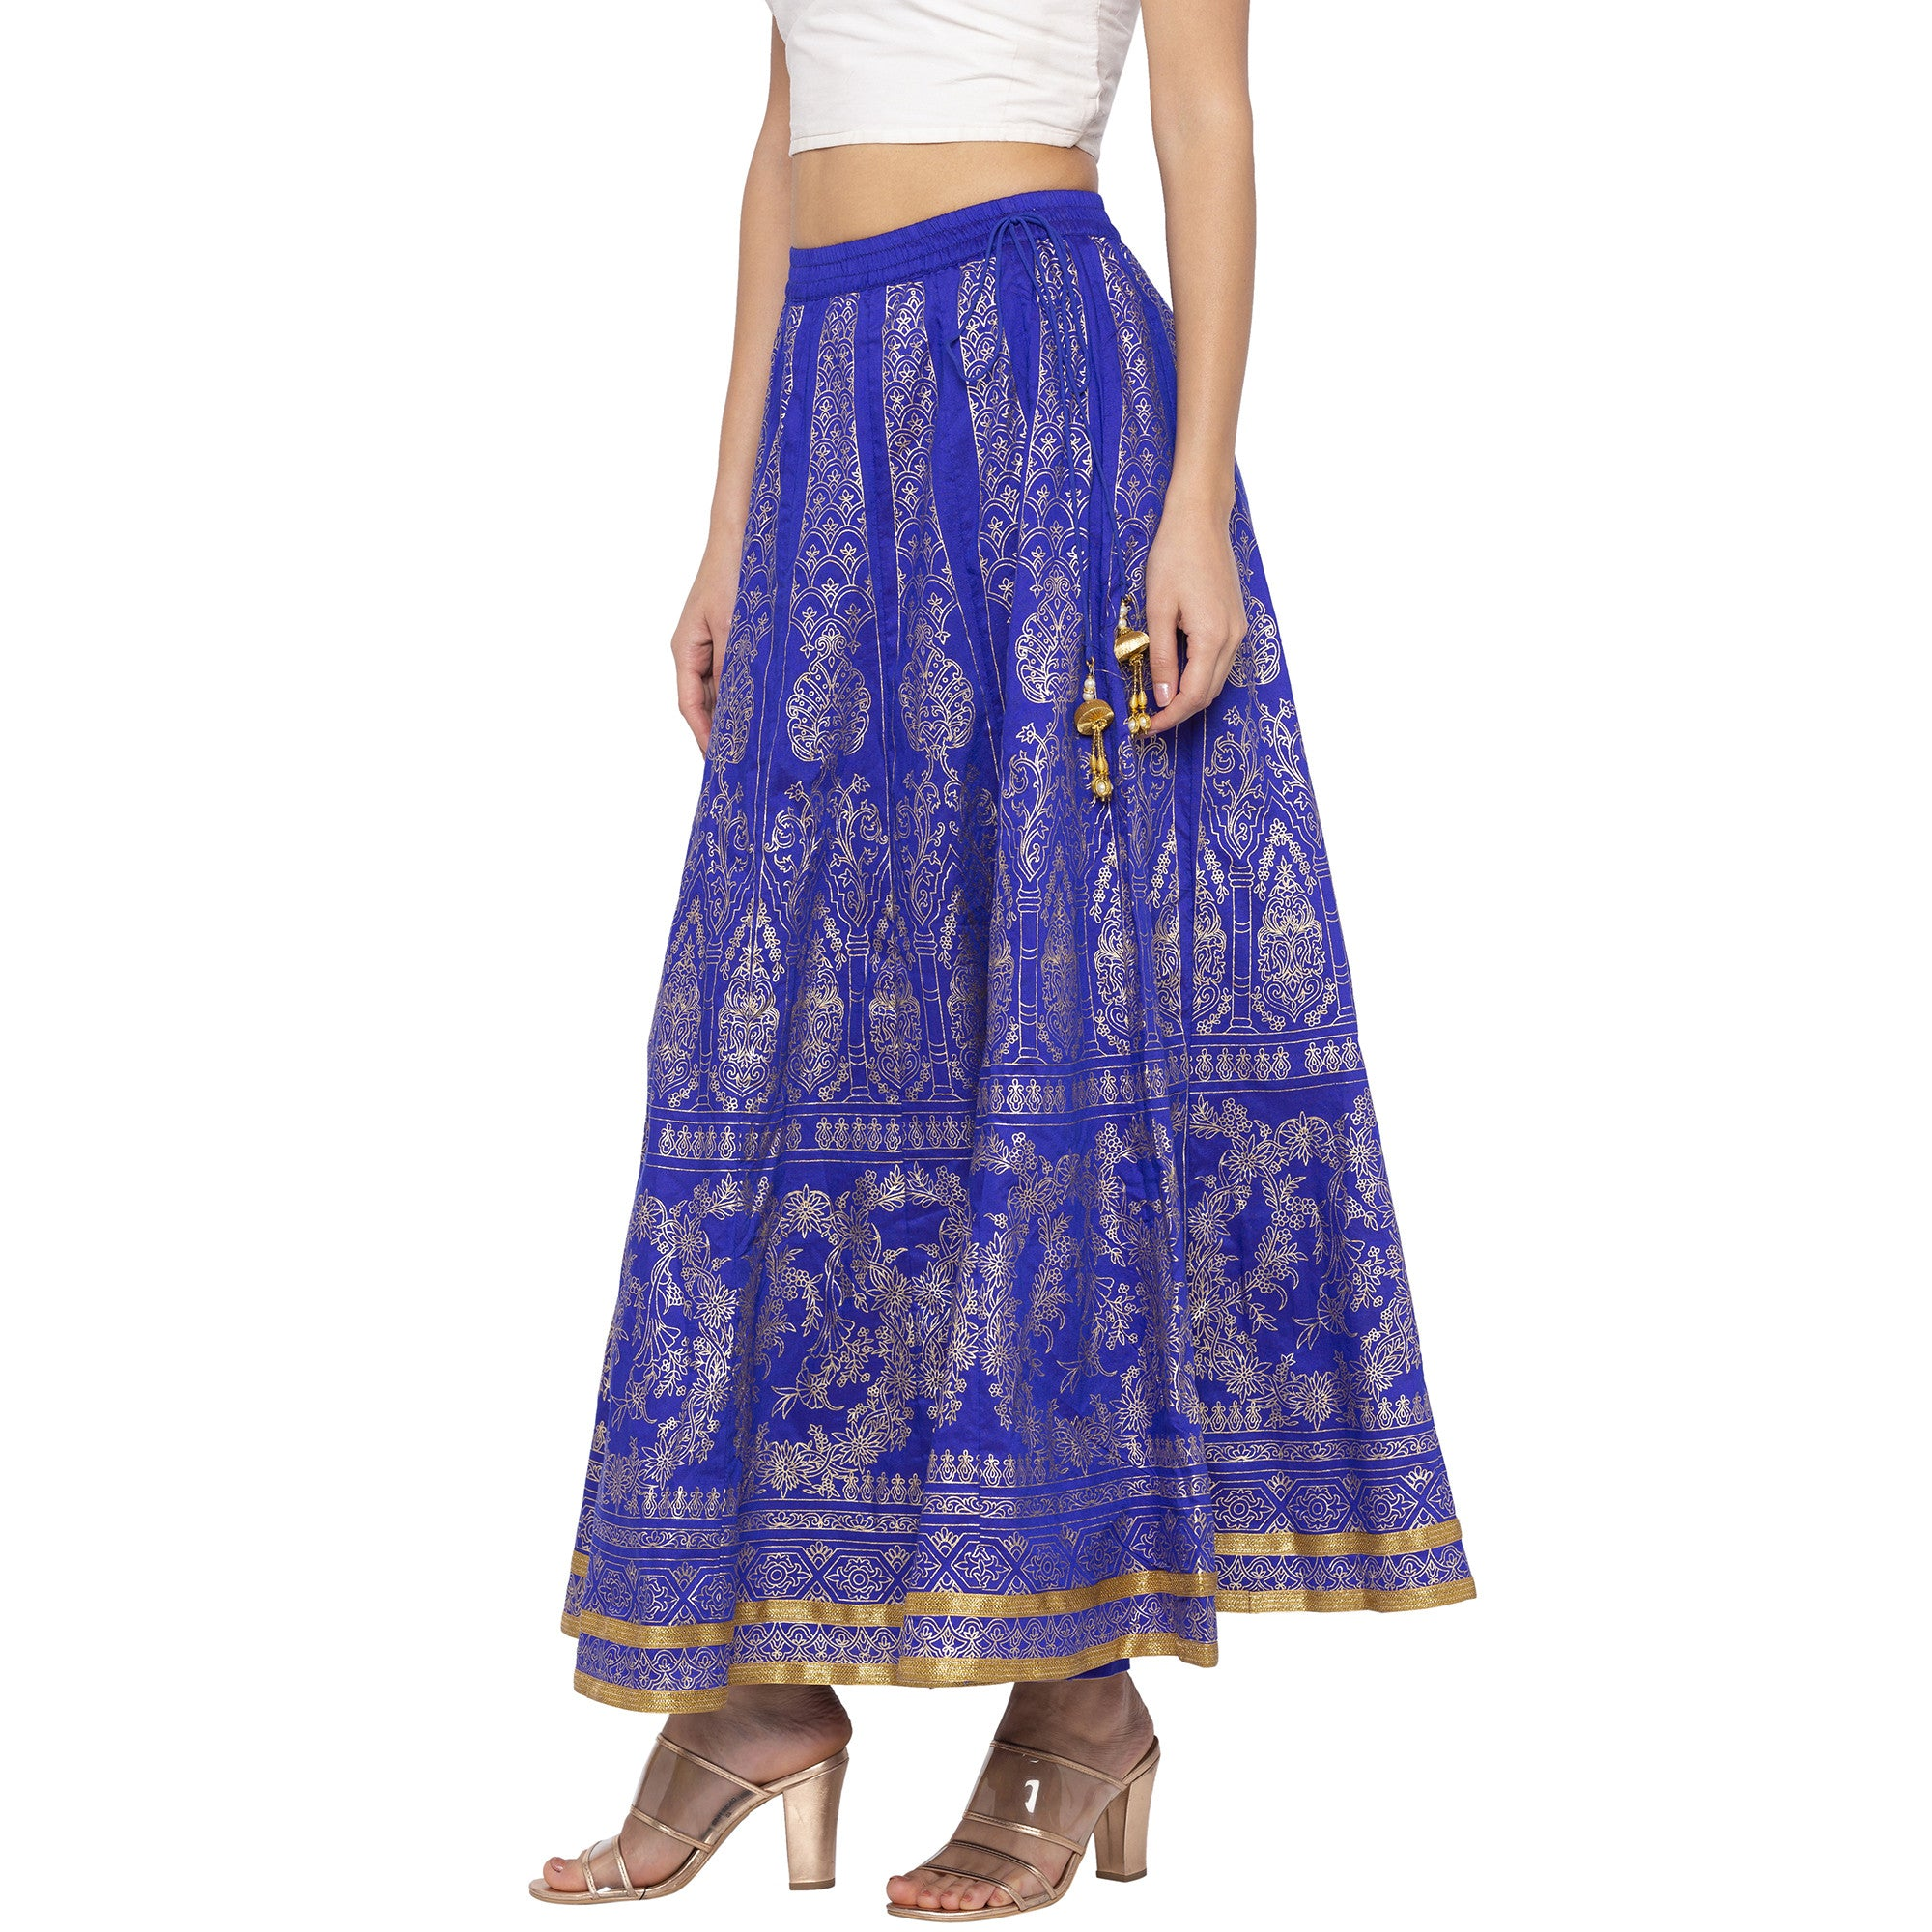 Blue Printed Flared Maxi Skirts-2